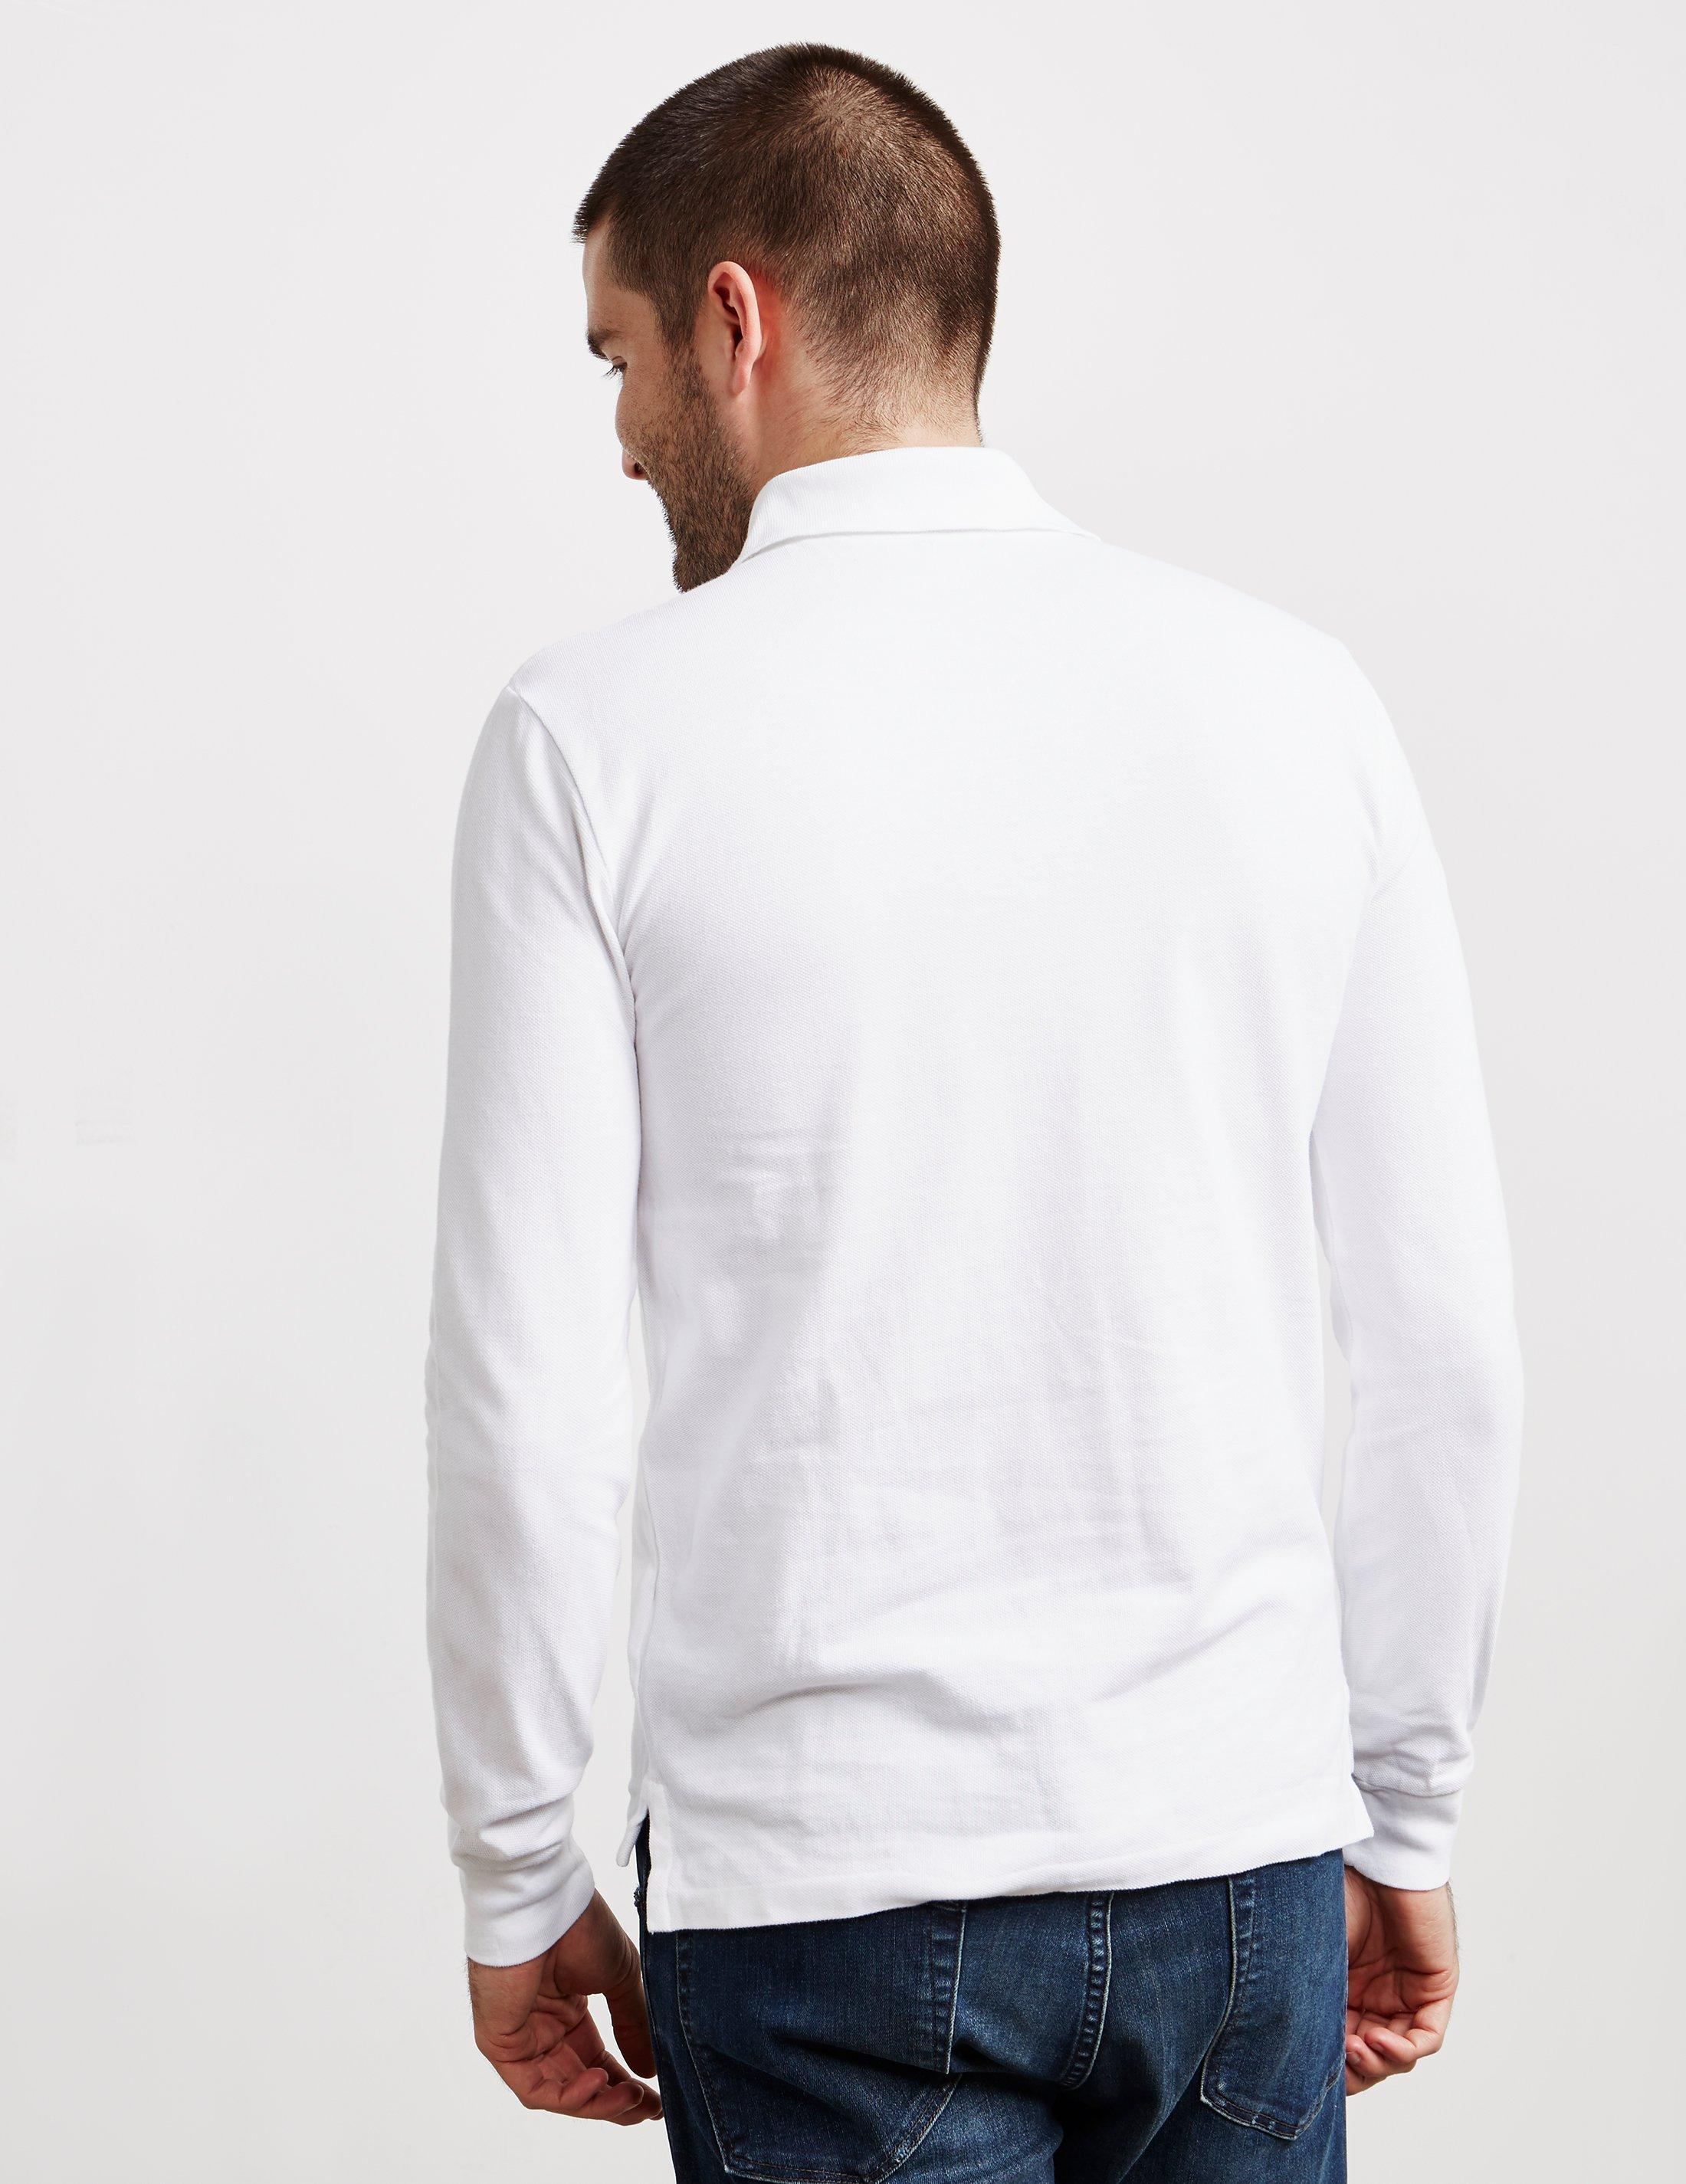 6ba6338e19f7 Polo Ralph Lauren - Slim Fit Long Sleeve Polo Shirt - Online Exclusive  White for Men. View fullscreen